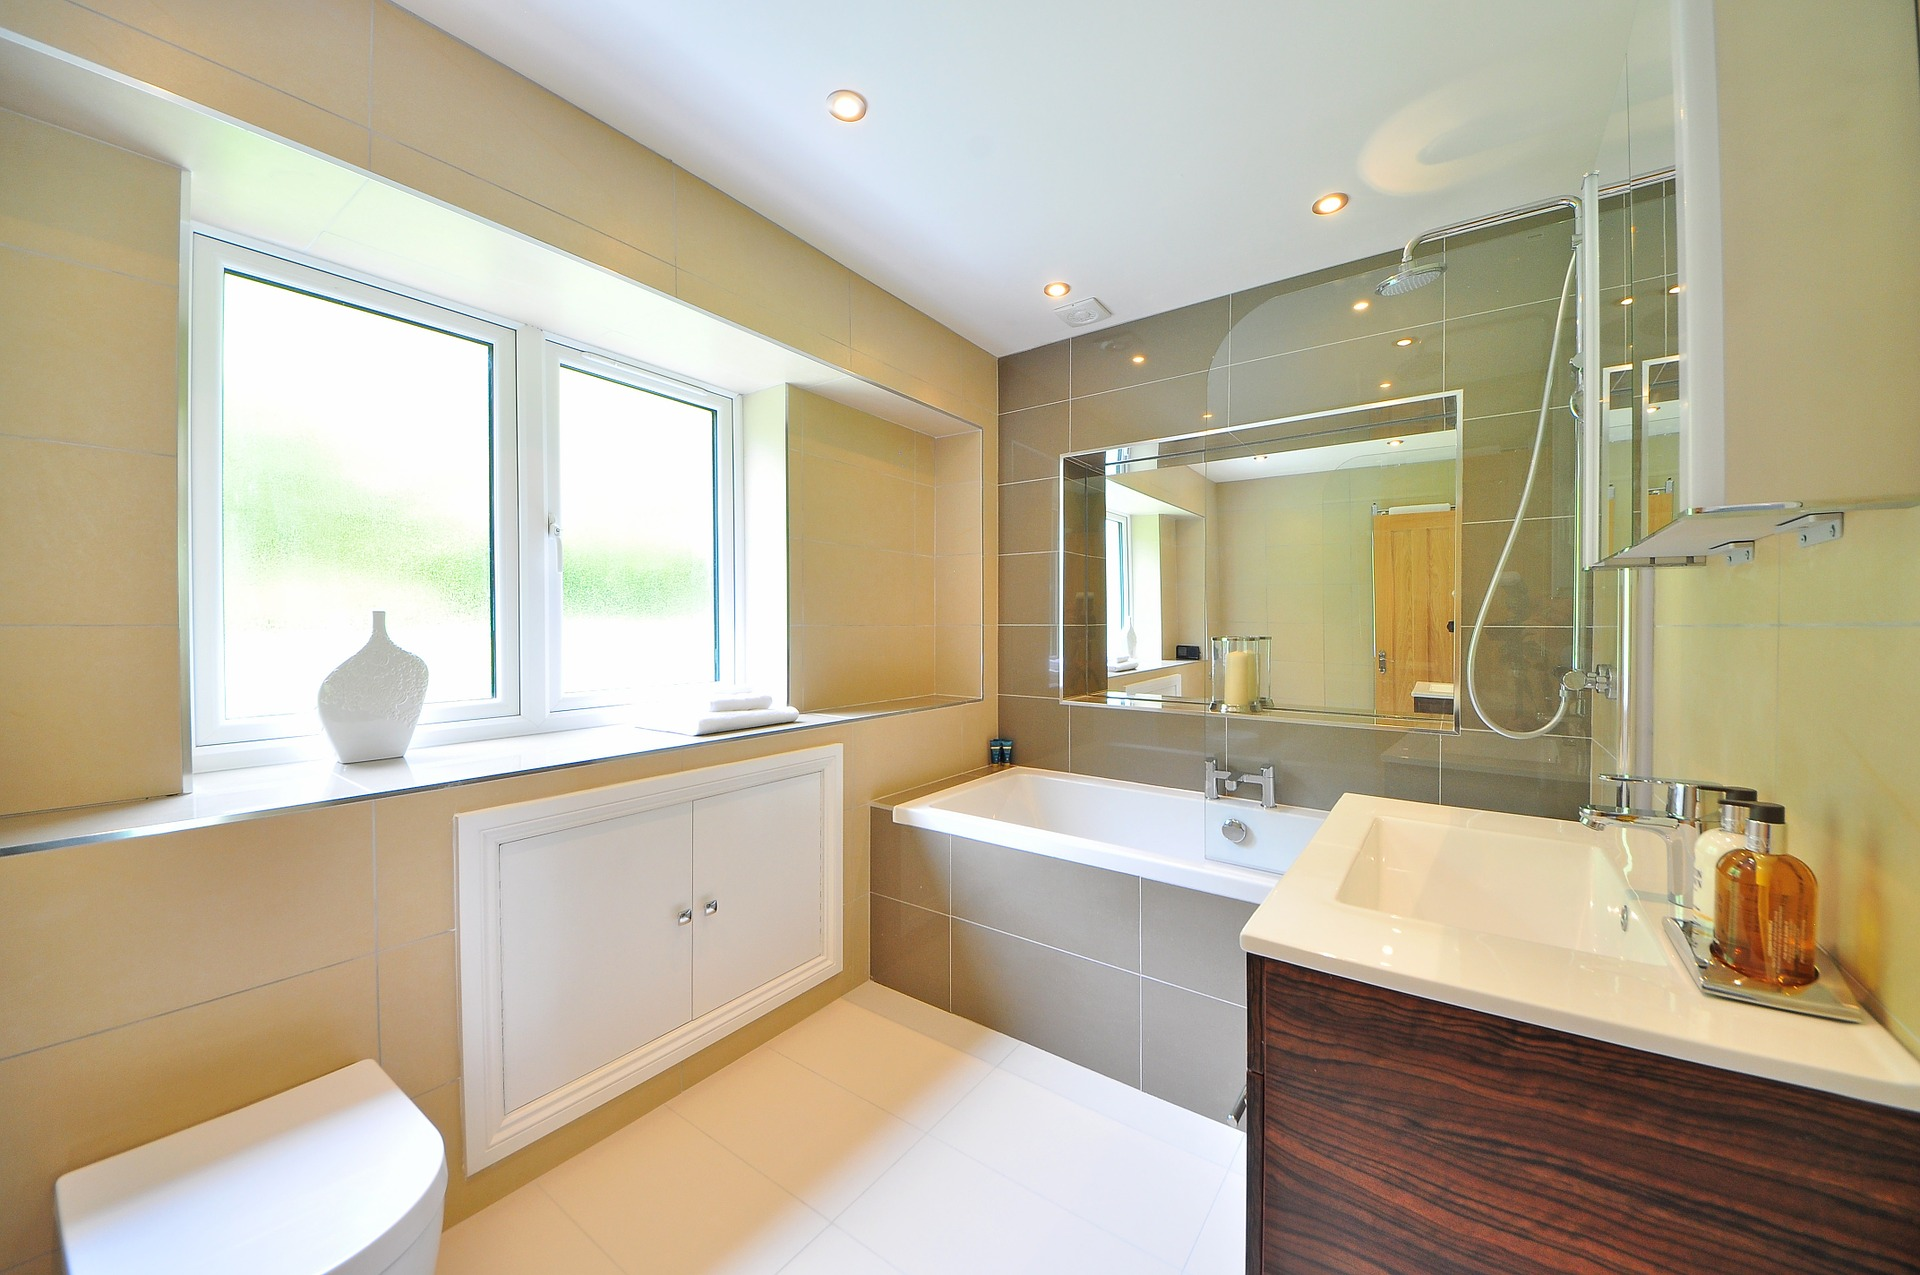 Mirror Installation: Top Tips For Installing Your New Mirror